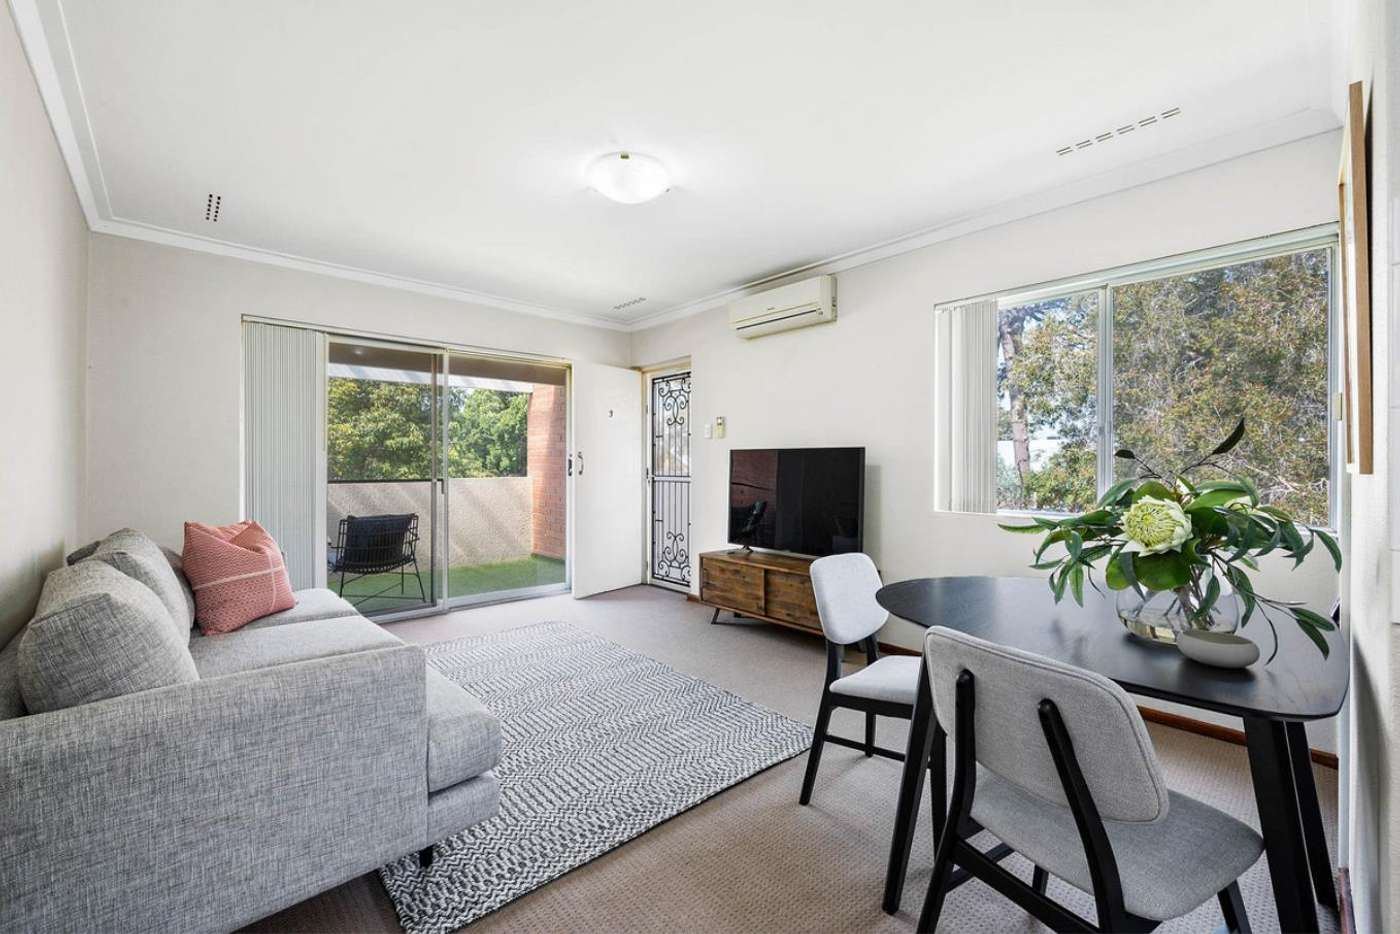 Main view of Homely apartment listing, 3/104 Onslow Road, Shenton Park WA 6008